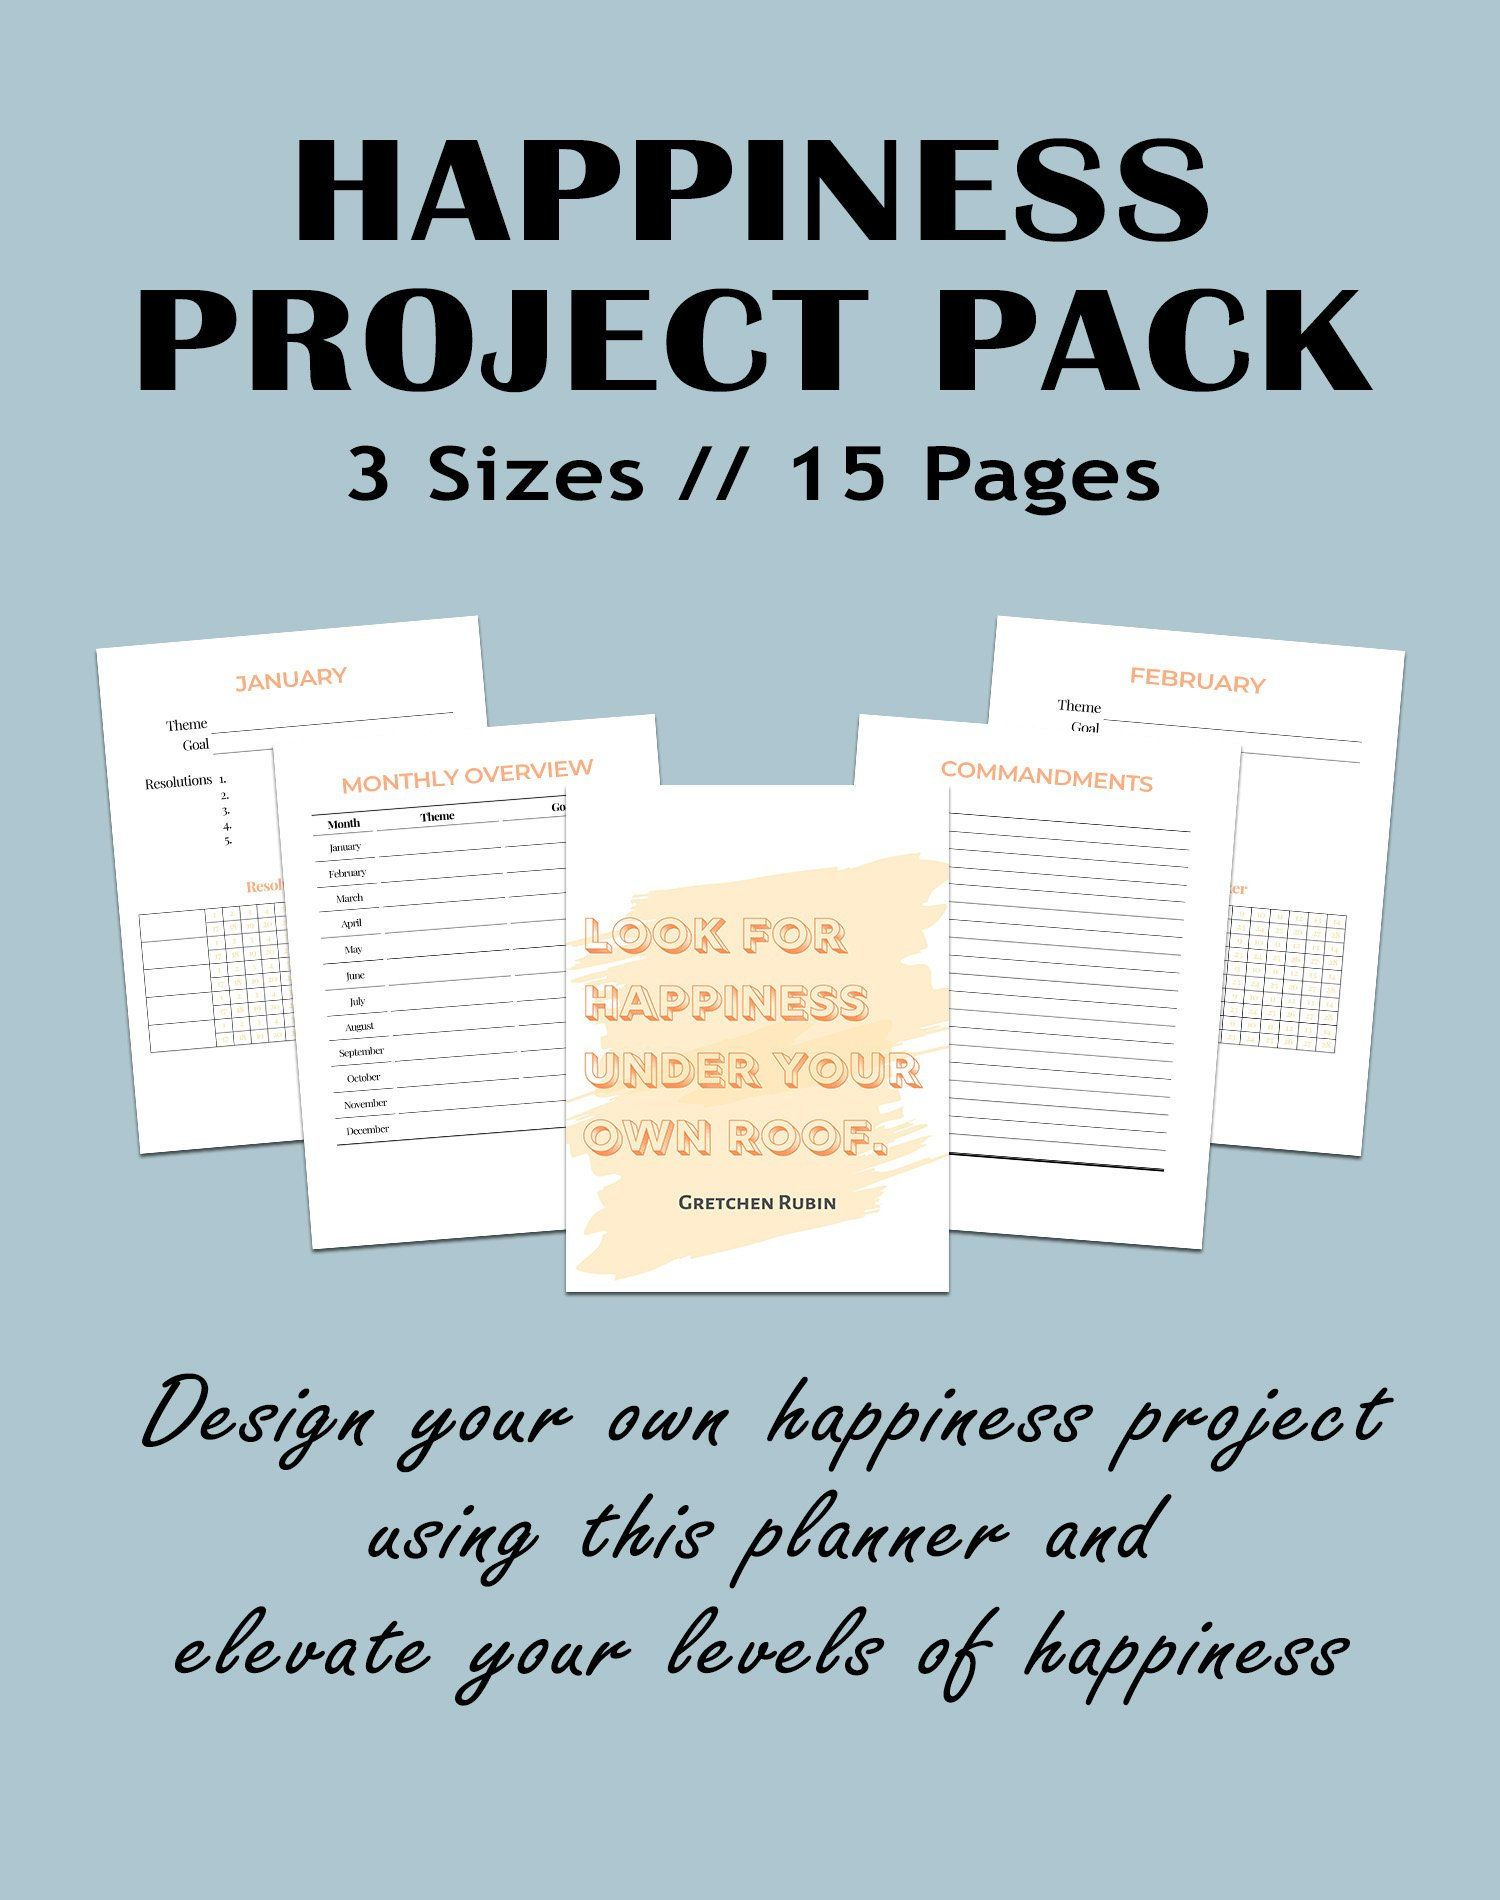 The Happiness Project Workbook